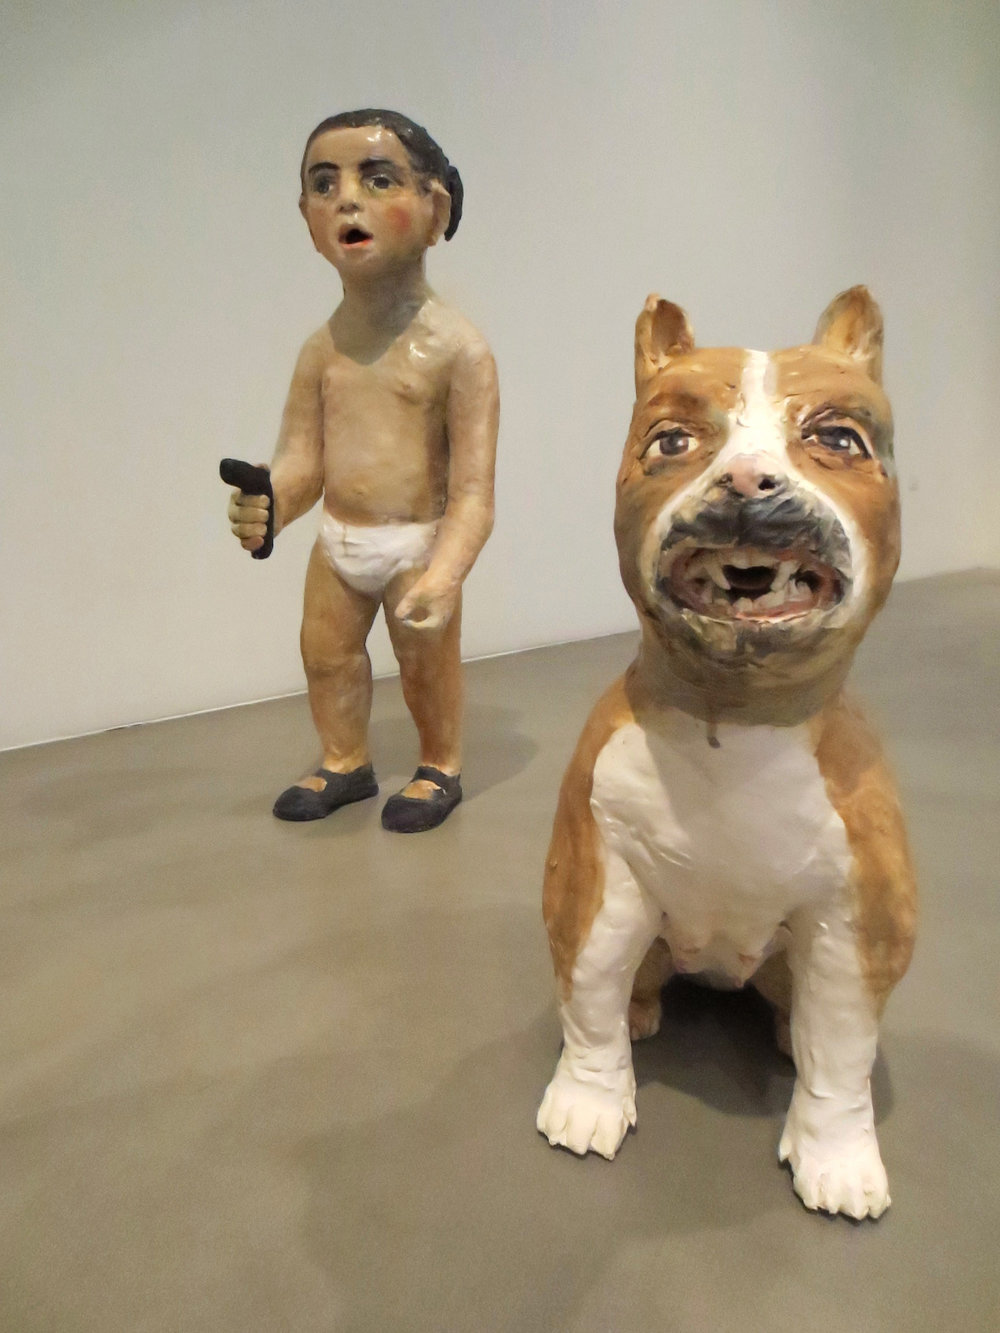 Perro Pendiente, (Dog in Waiting) 2012, Ceramic, Scott White Contemporary Art, California